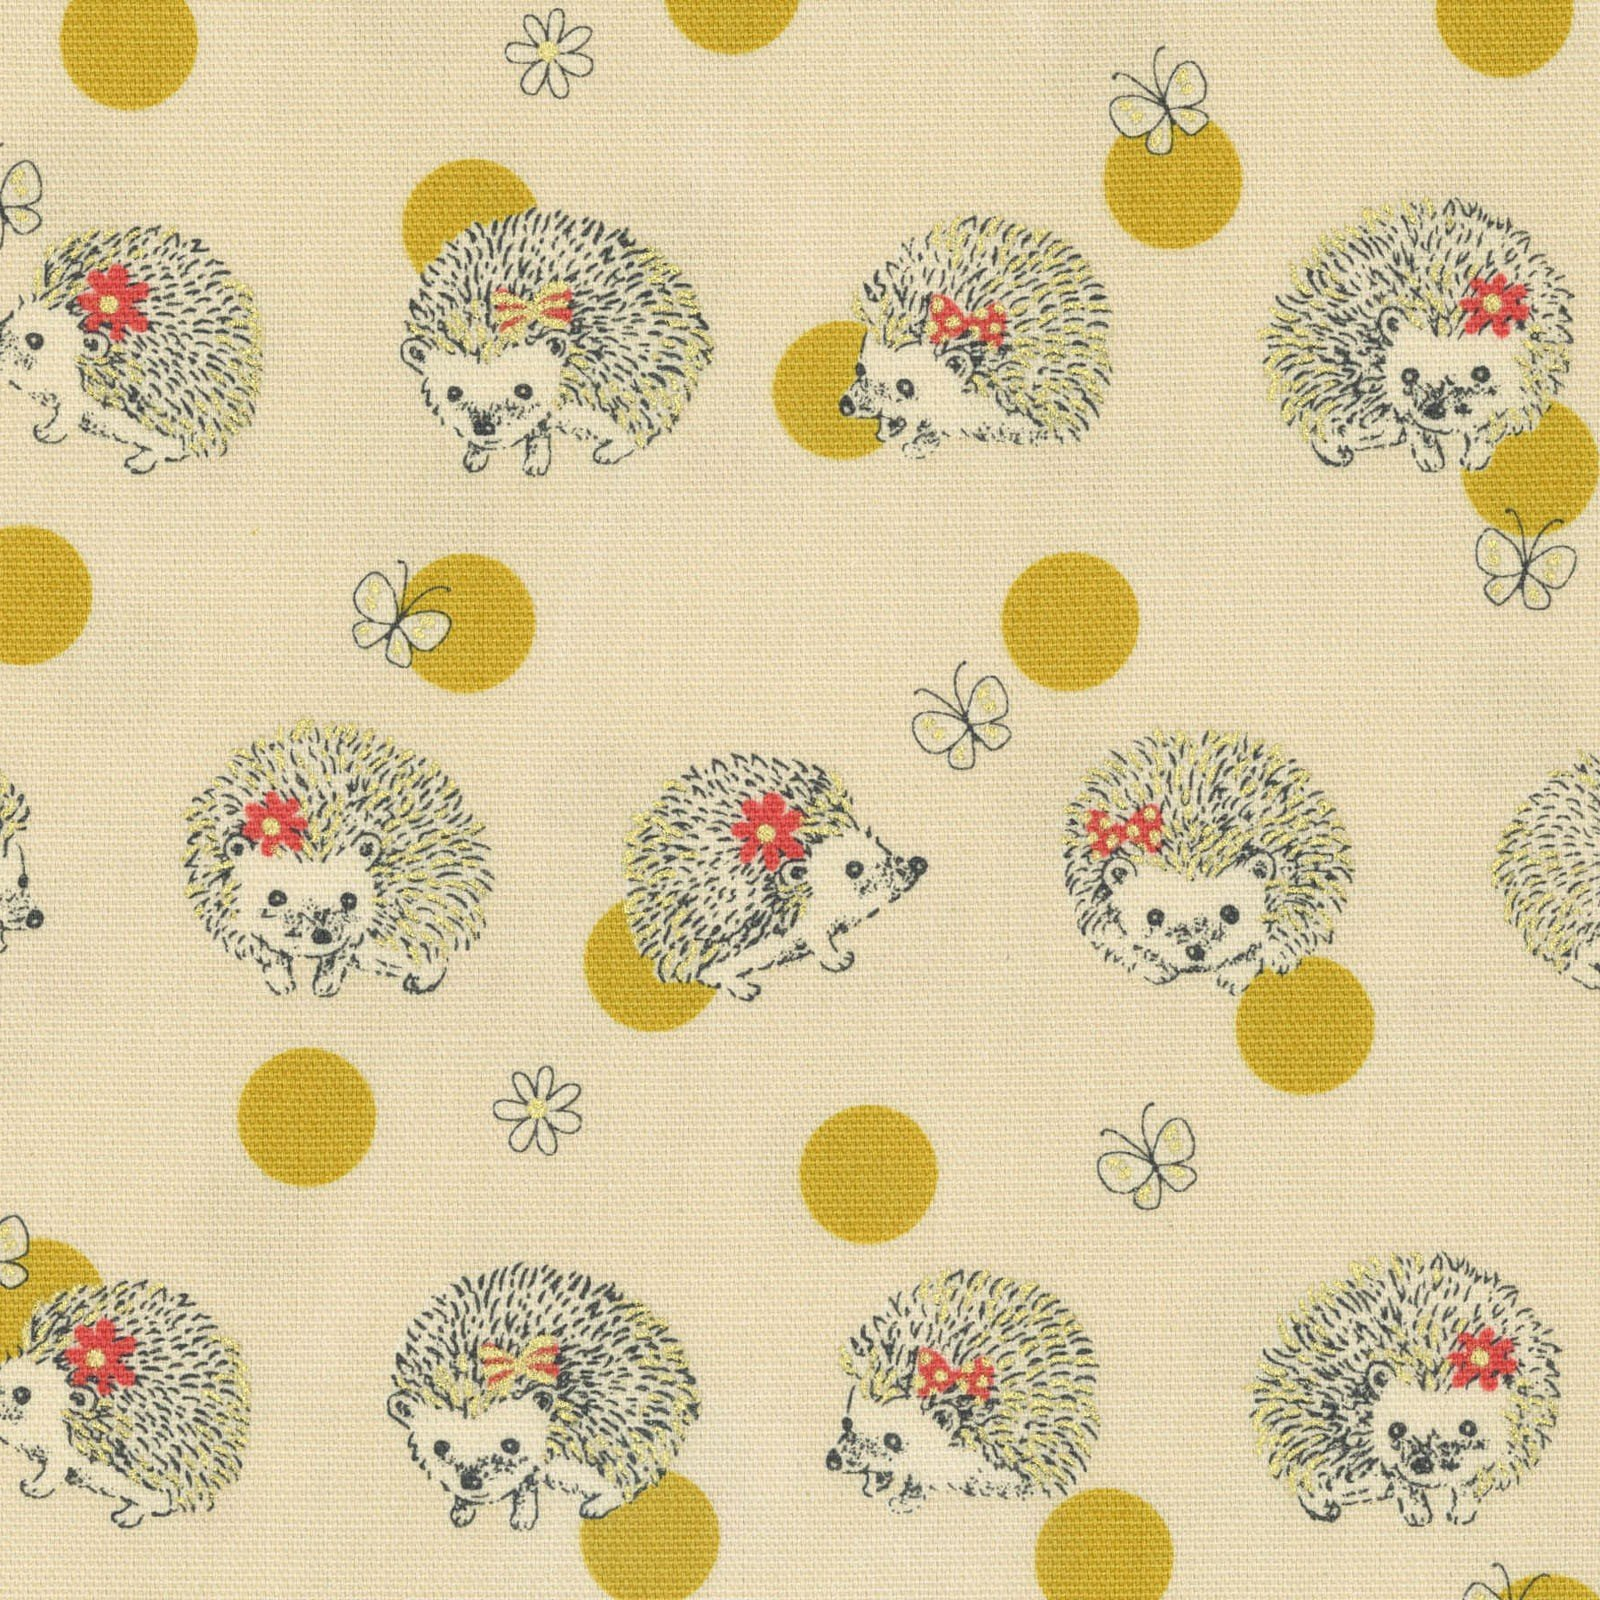 COMING SOON JULY 2018! Hedgehogs Retro Japanese Asian Cotton Oxford Cloth Cotton Fabric